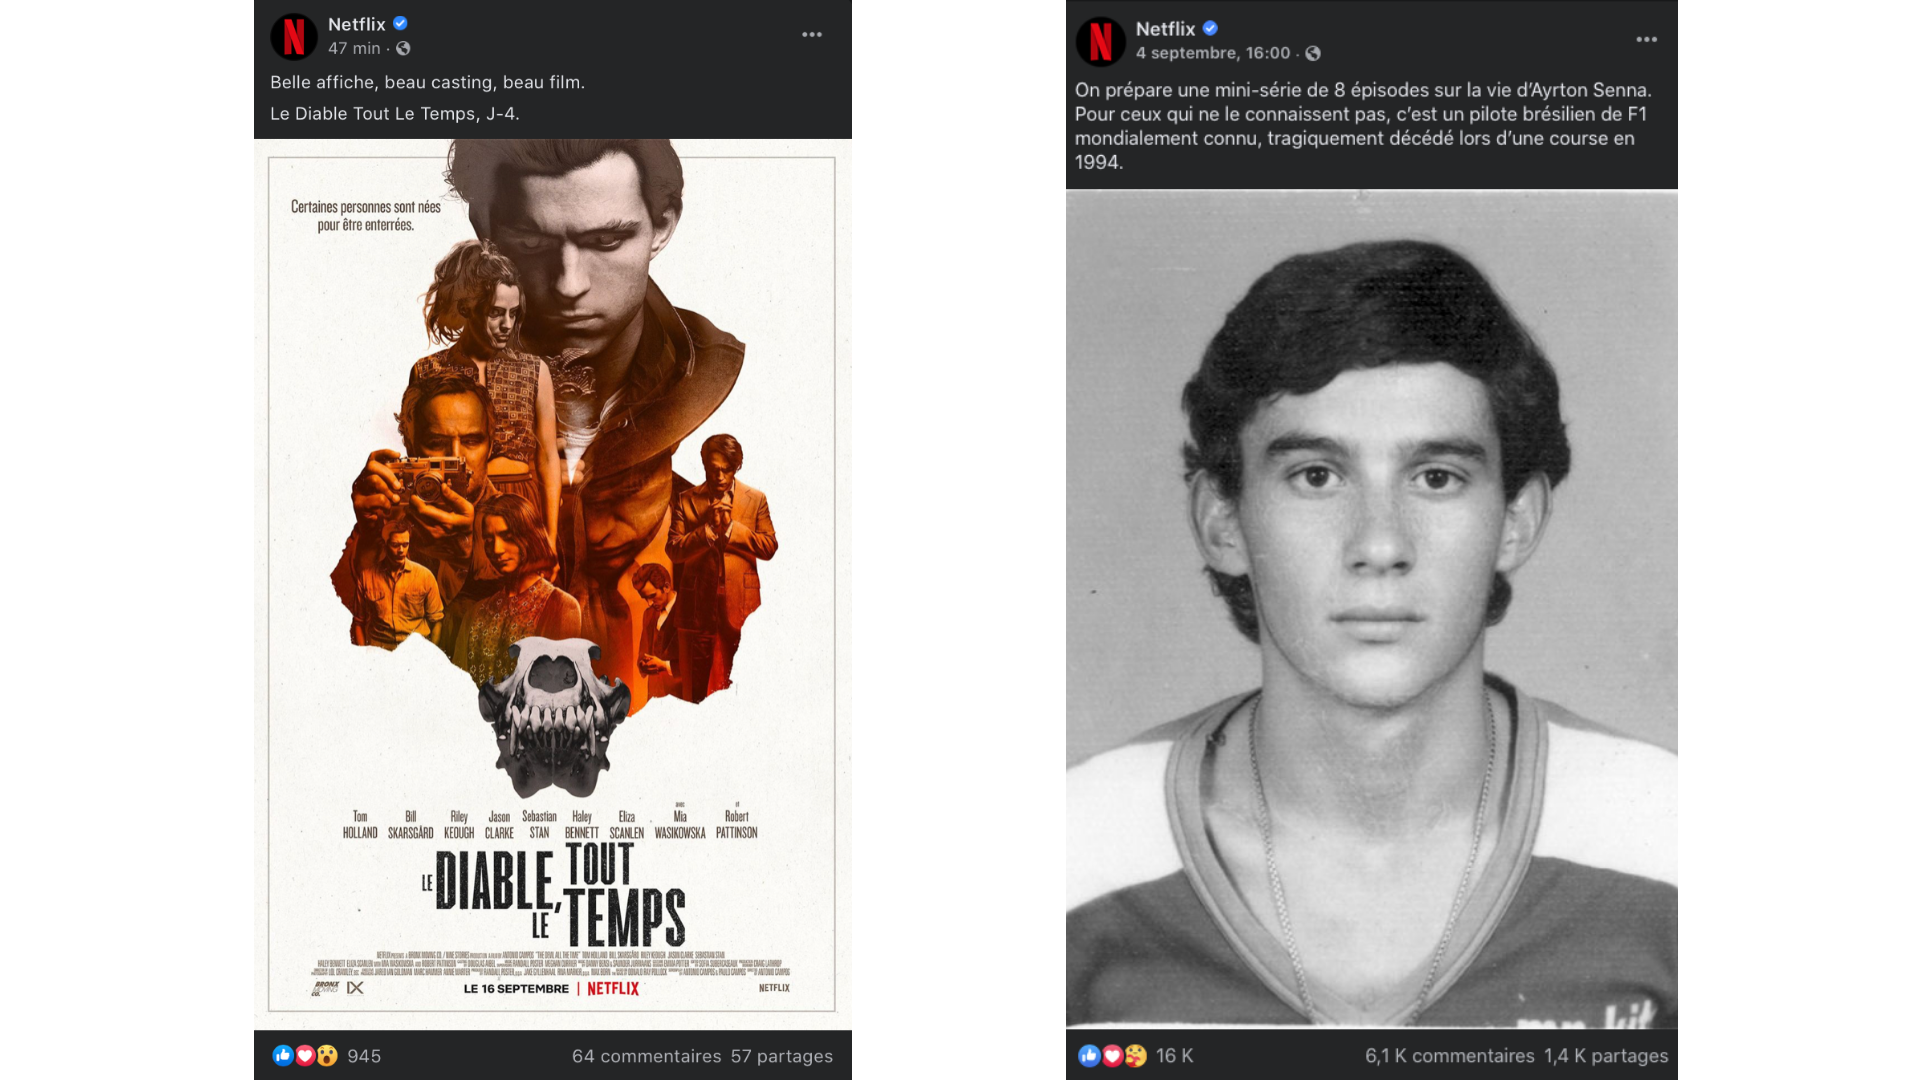 Screenshot of the Netflix Facebook page